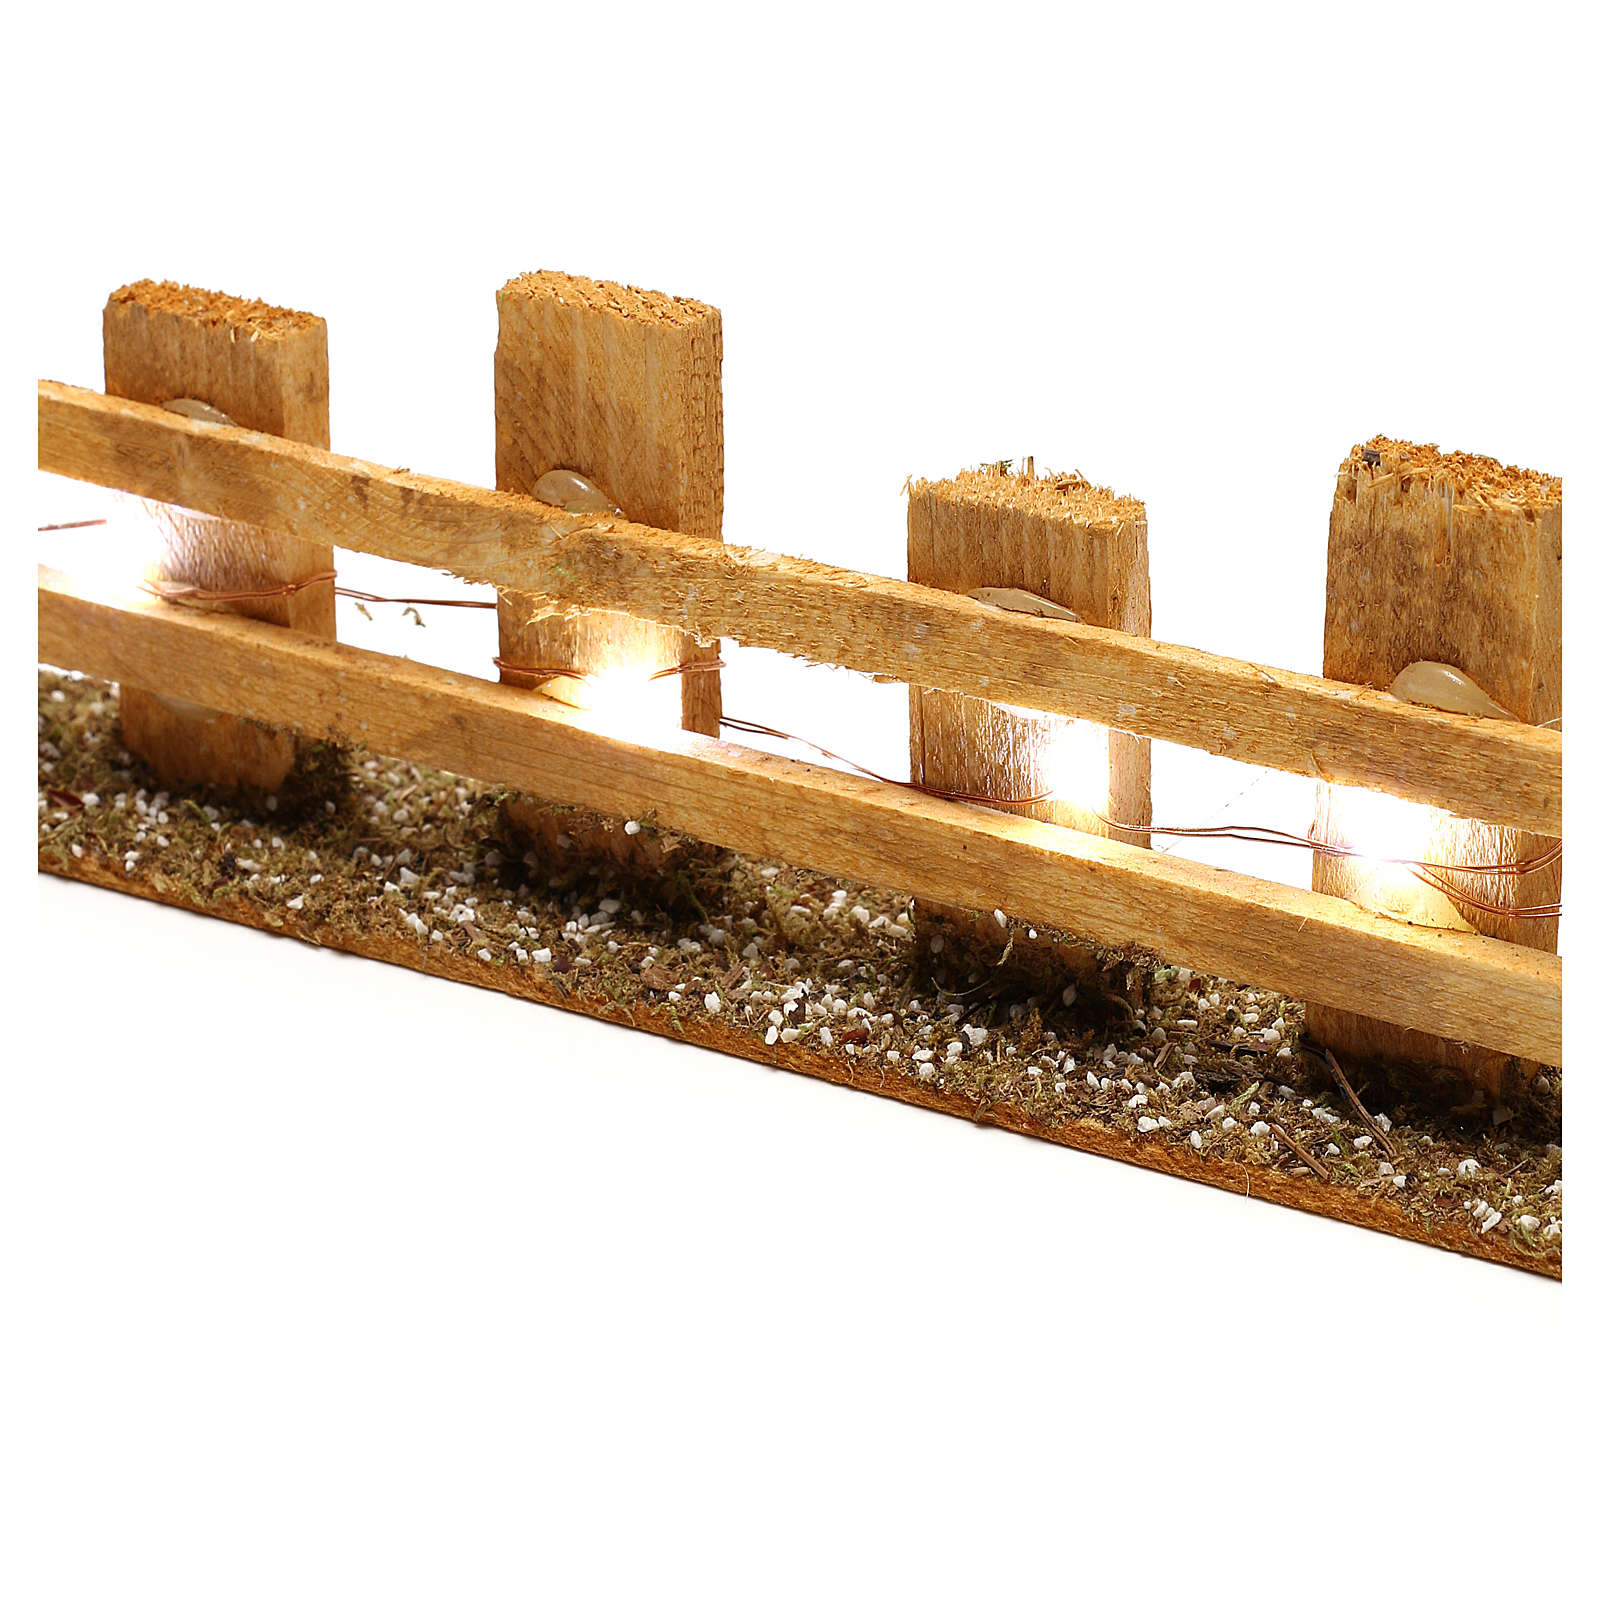 Wooden fence for Nativity scene 4x35x8 cm with lights for figurines 4-6 cm 4